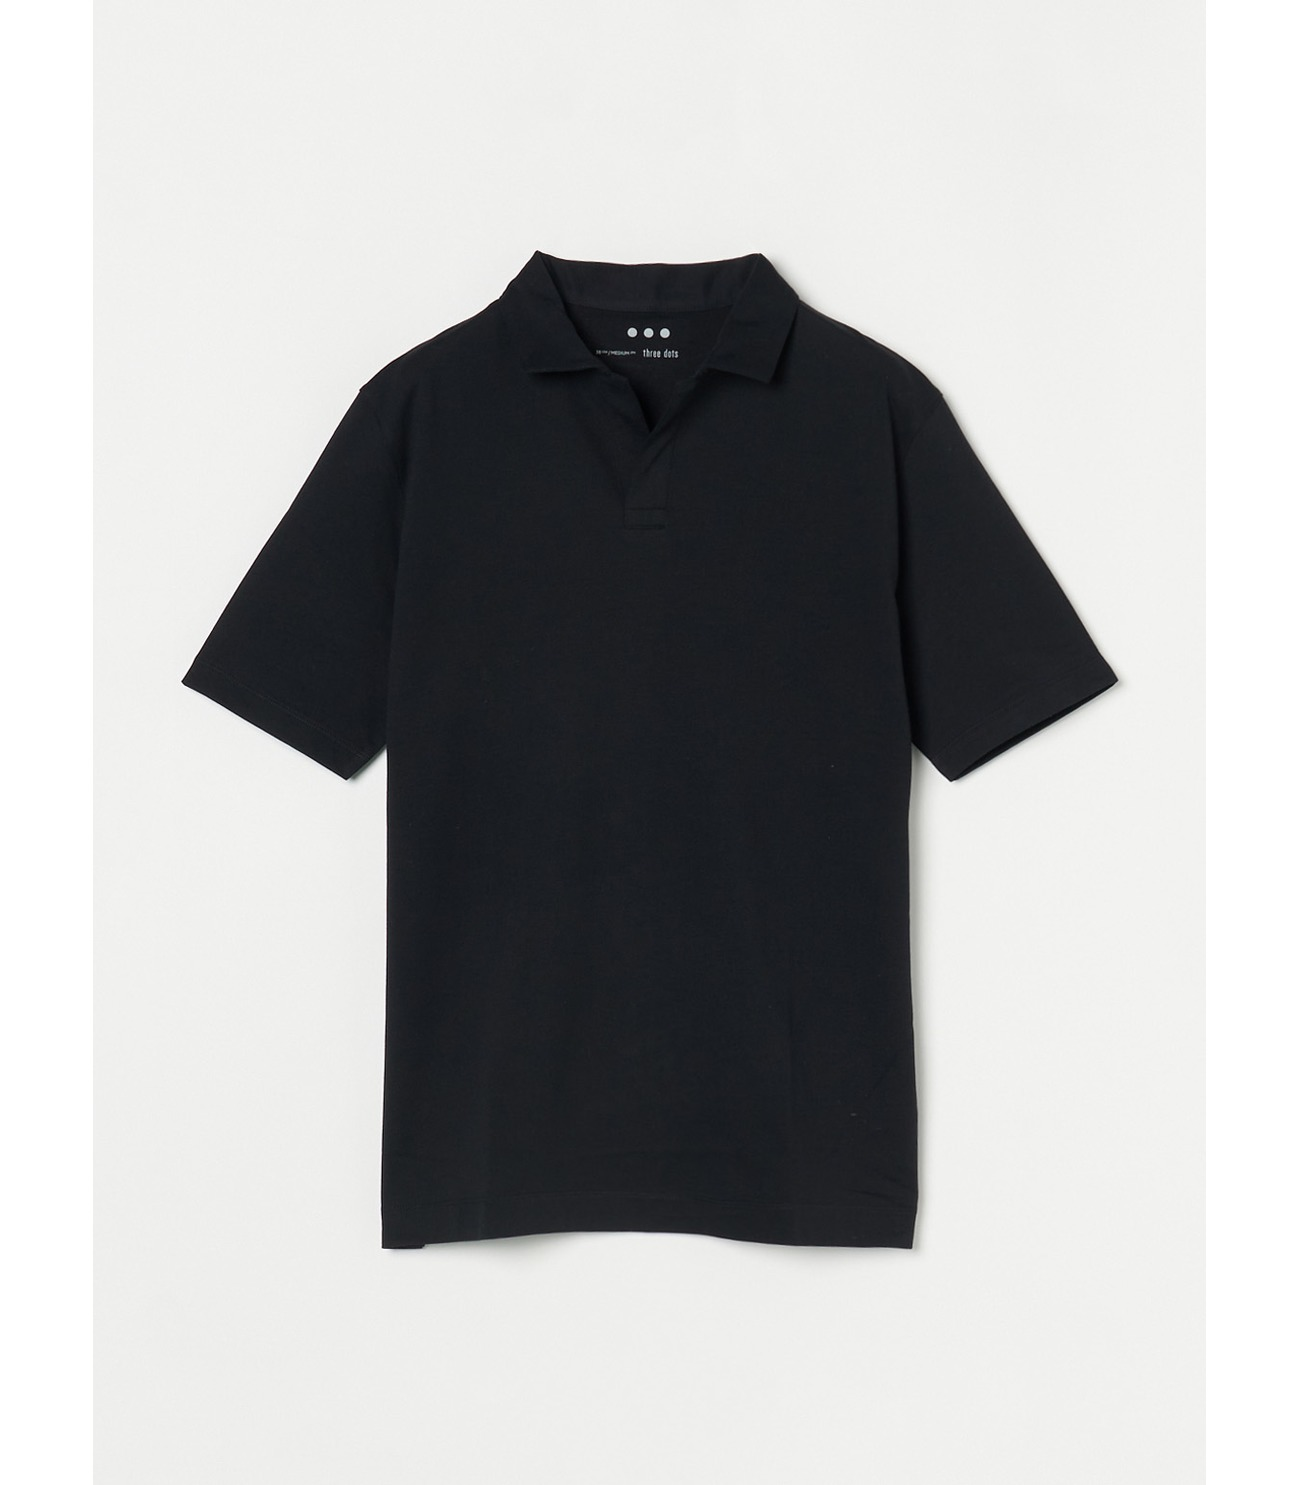 Men's powdery cotton skipper polo 詳細画像 black 1